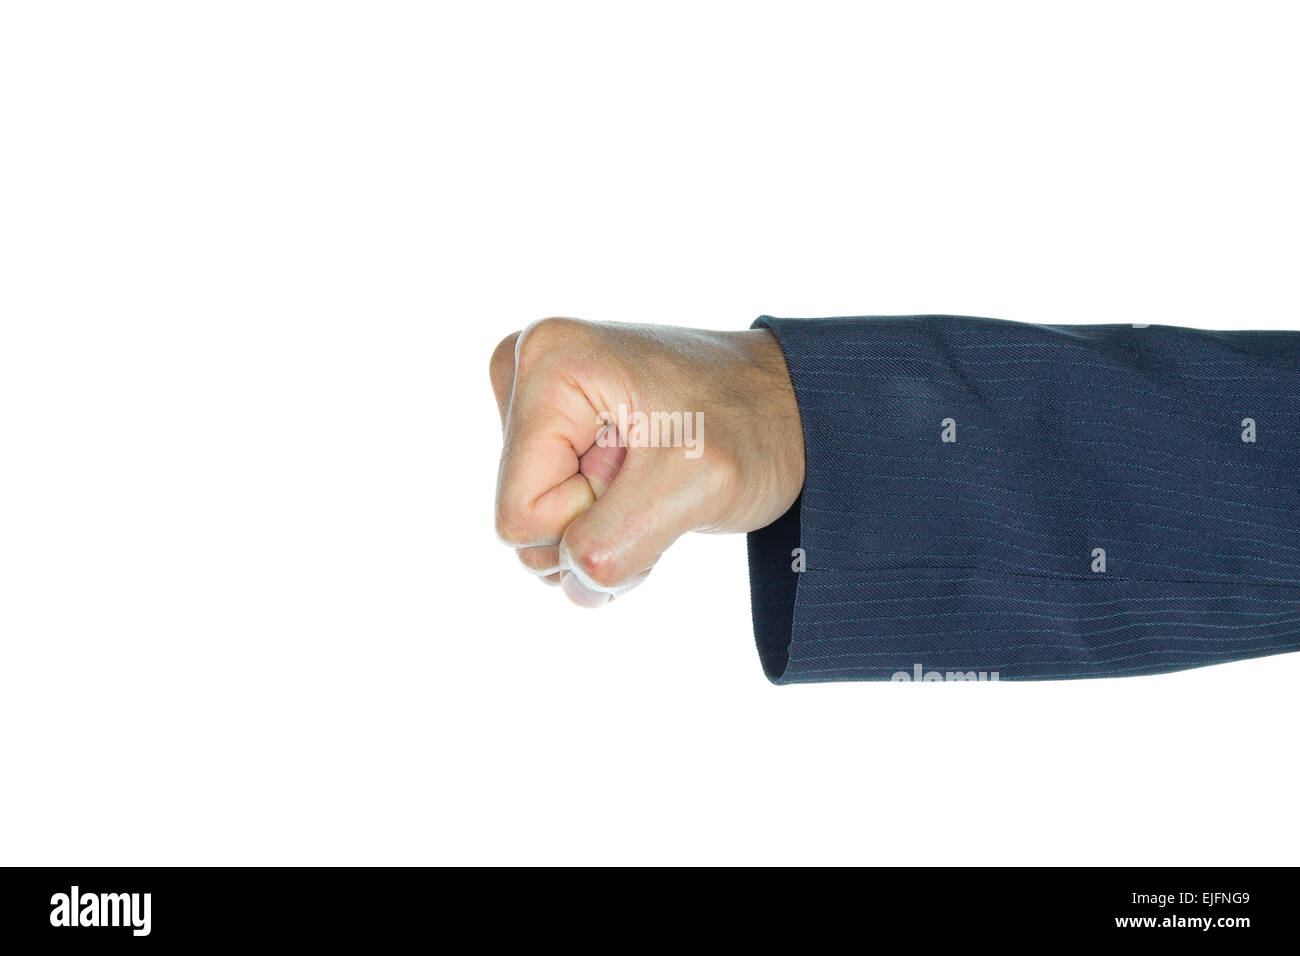 Fist of businessman is punching on white background. Concept about strong and violence and conflict. - Stock Image